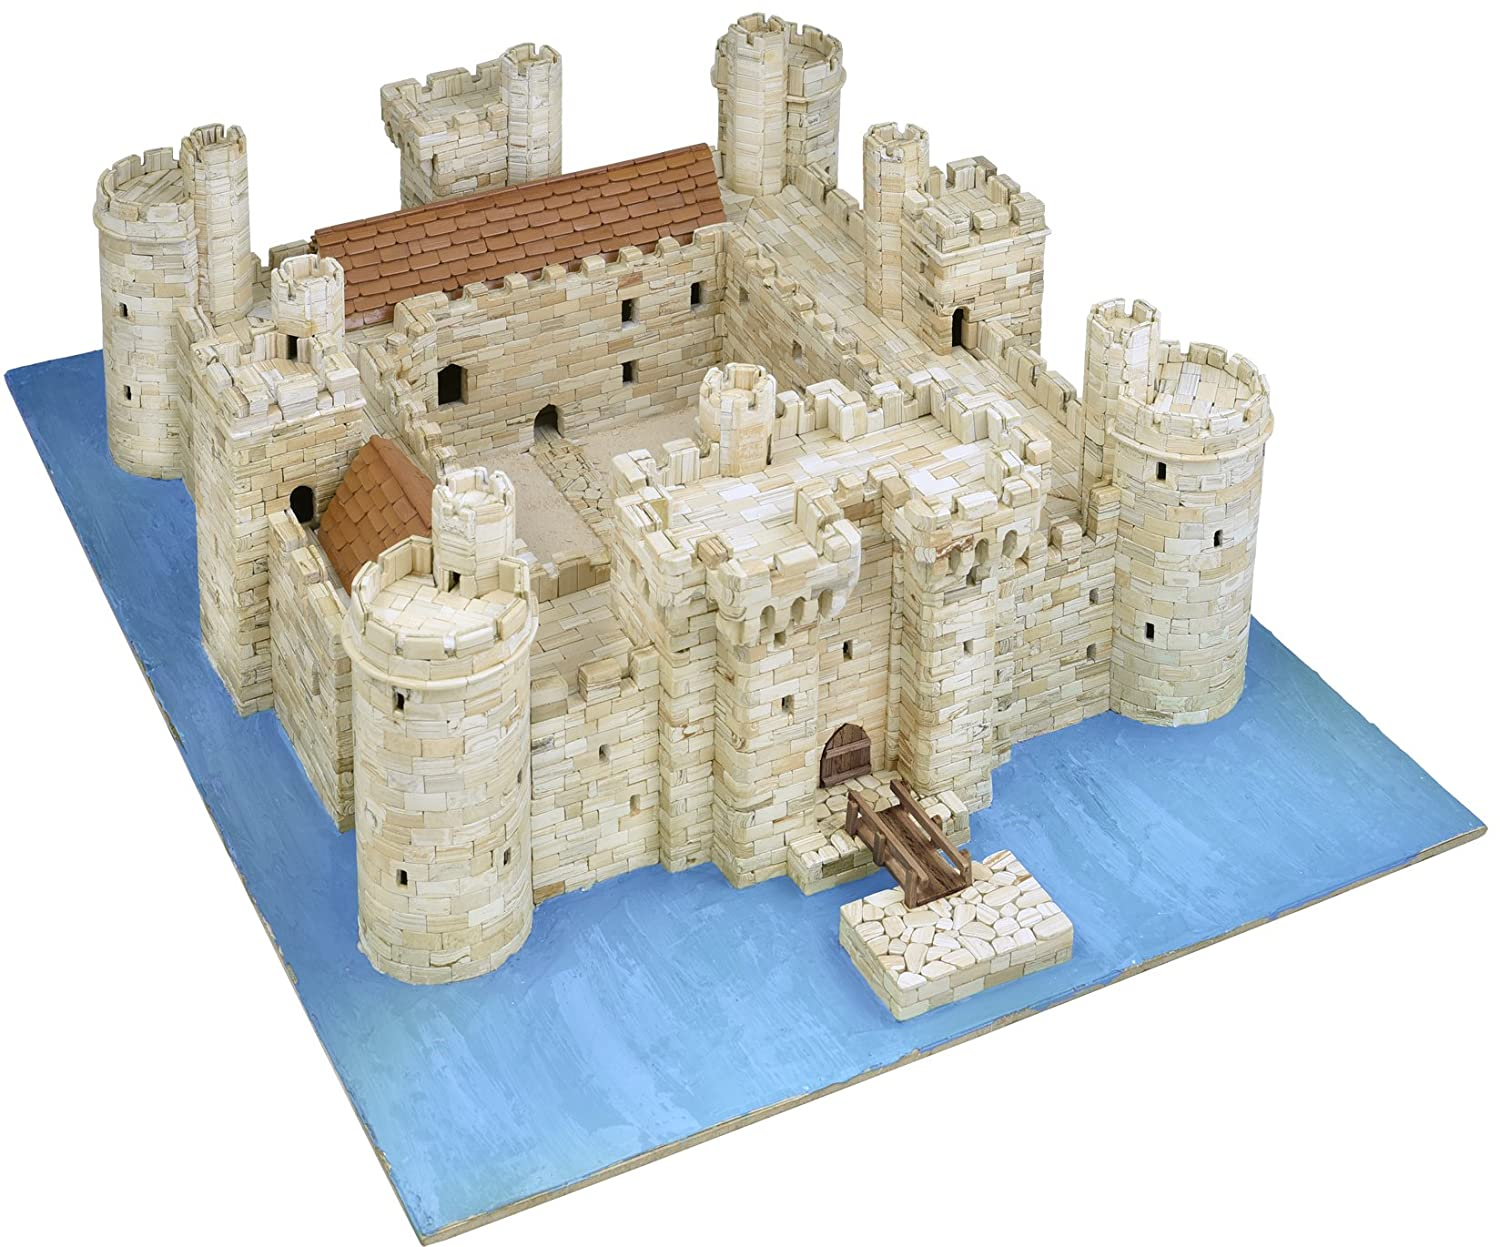 AEDES BoDiam Castle Model Kit, 37 x 26 x 7 cm: Amazon.es ...